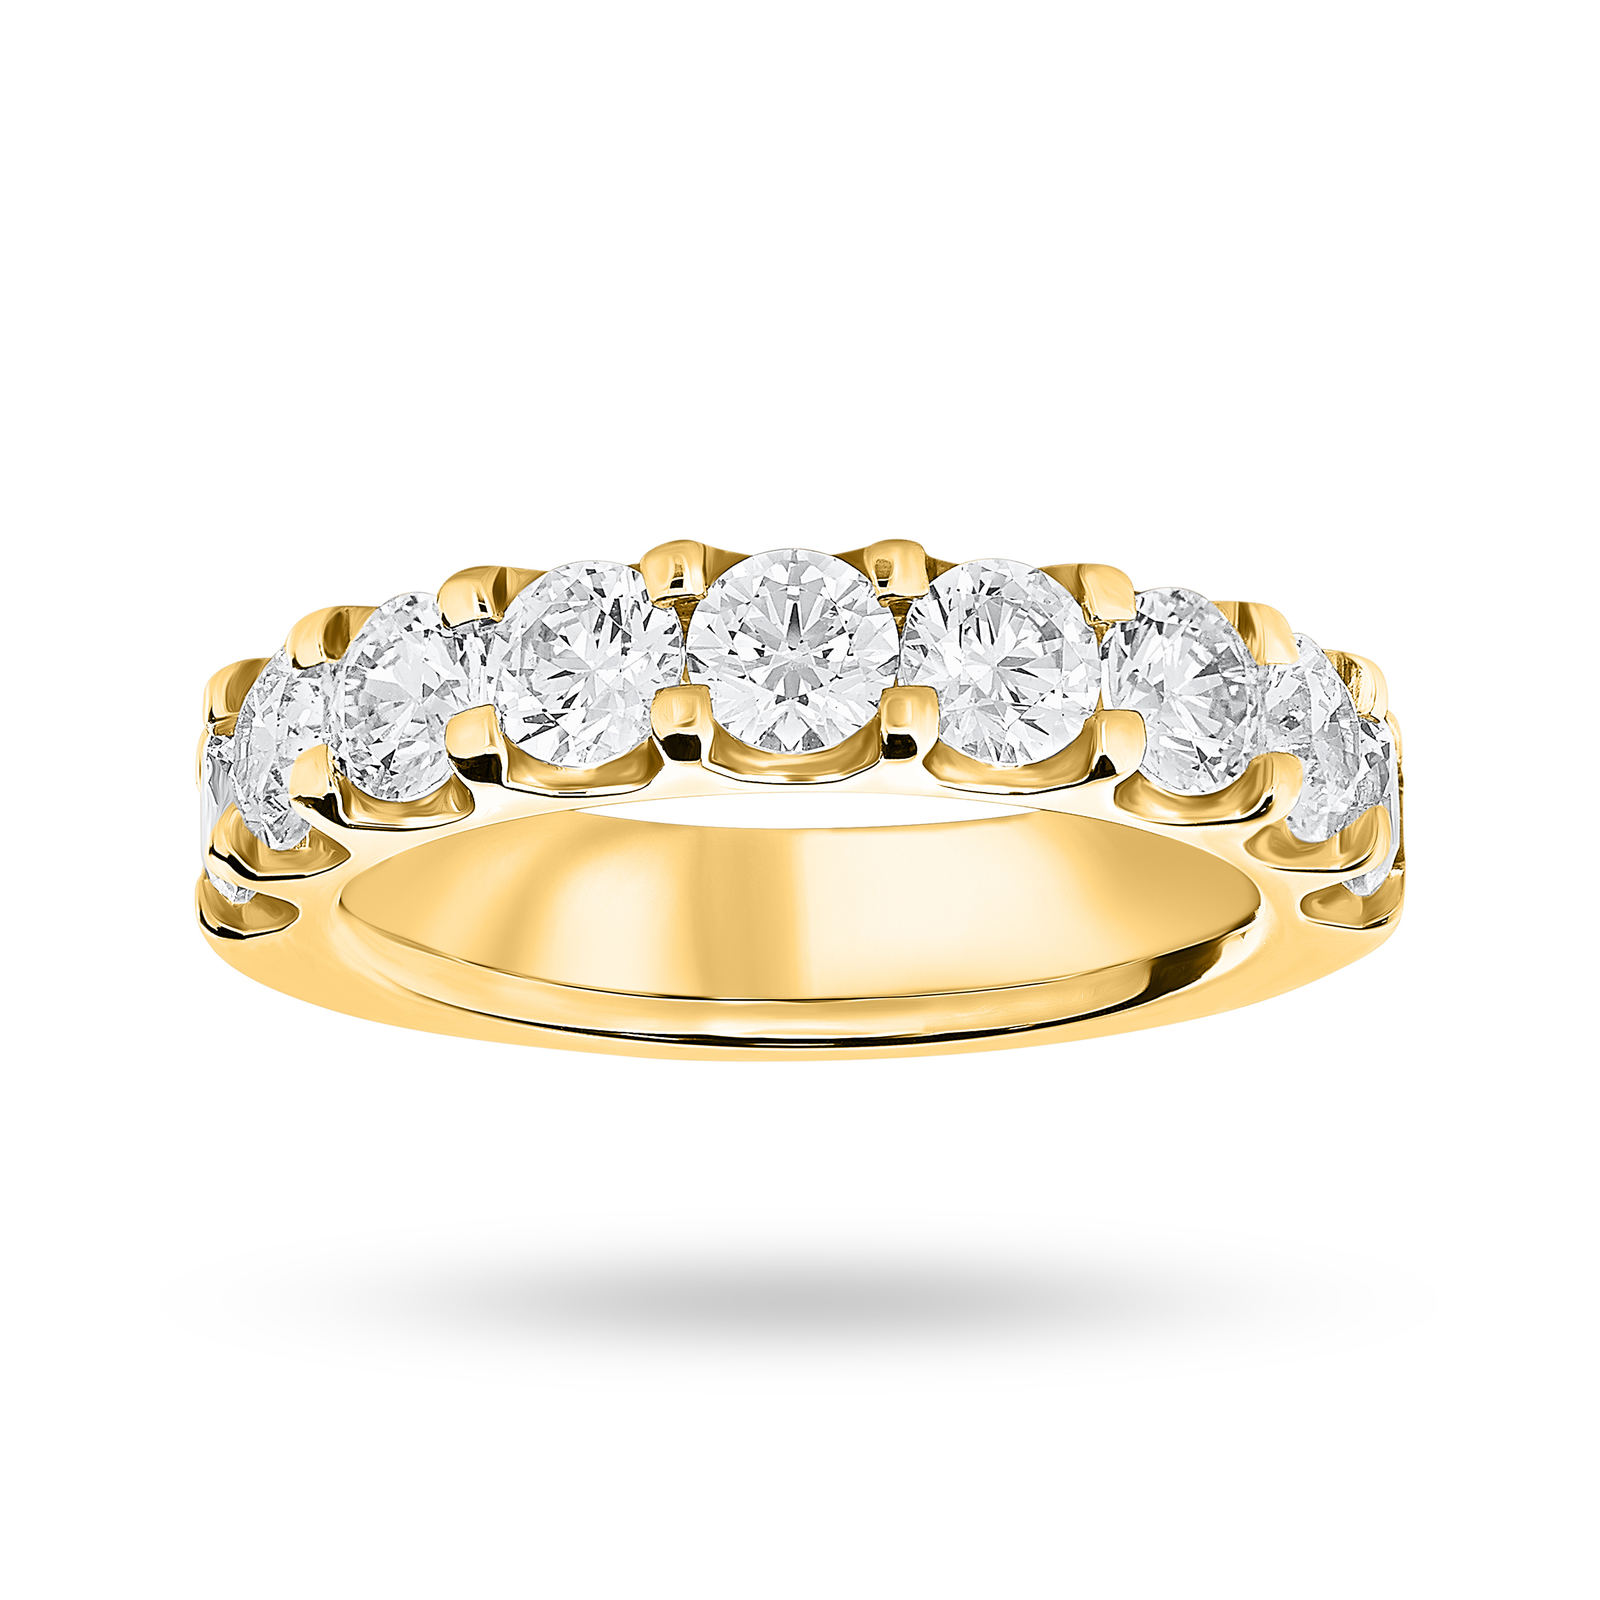 18 Carat Yellow Gold 2.10 Carat Brilliant Cut Half Eternity